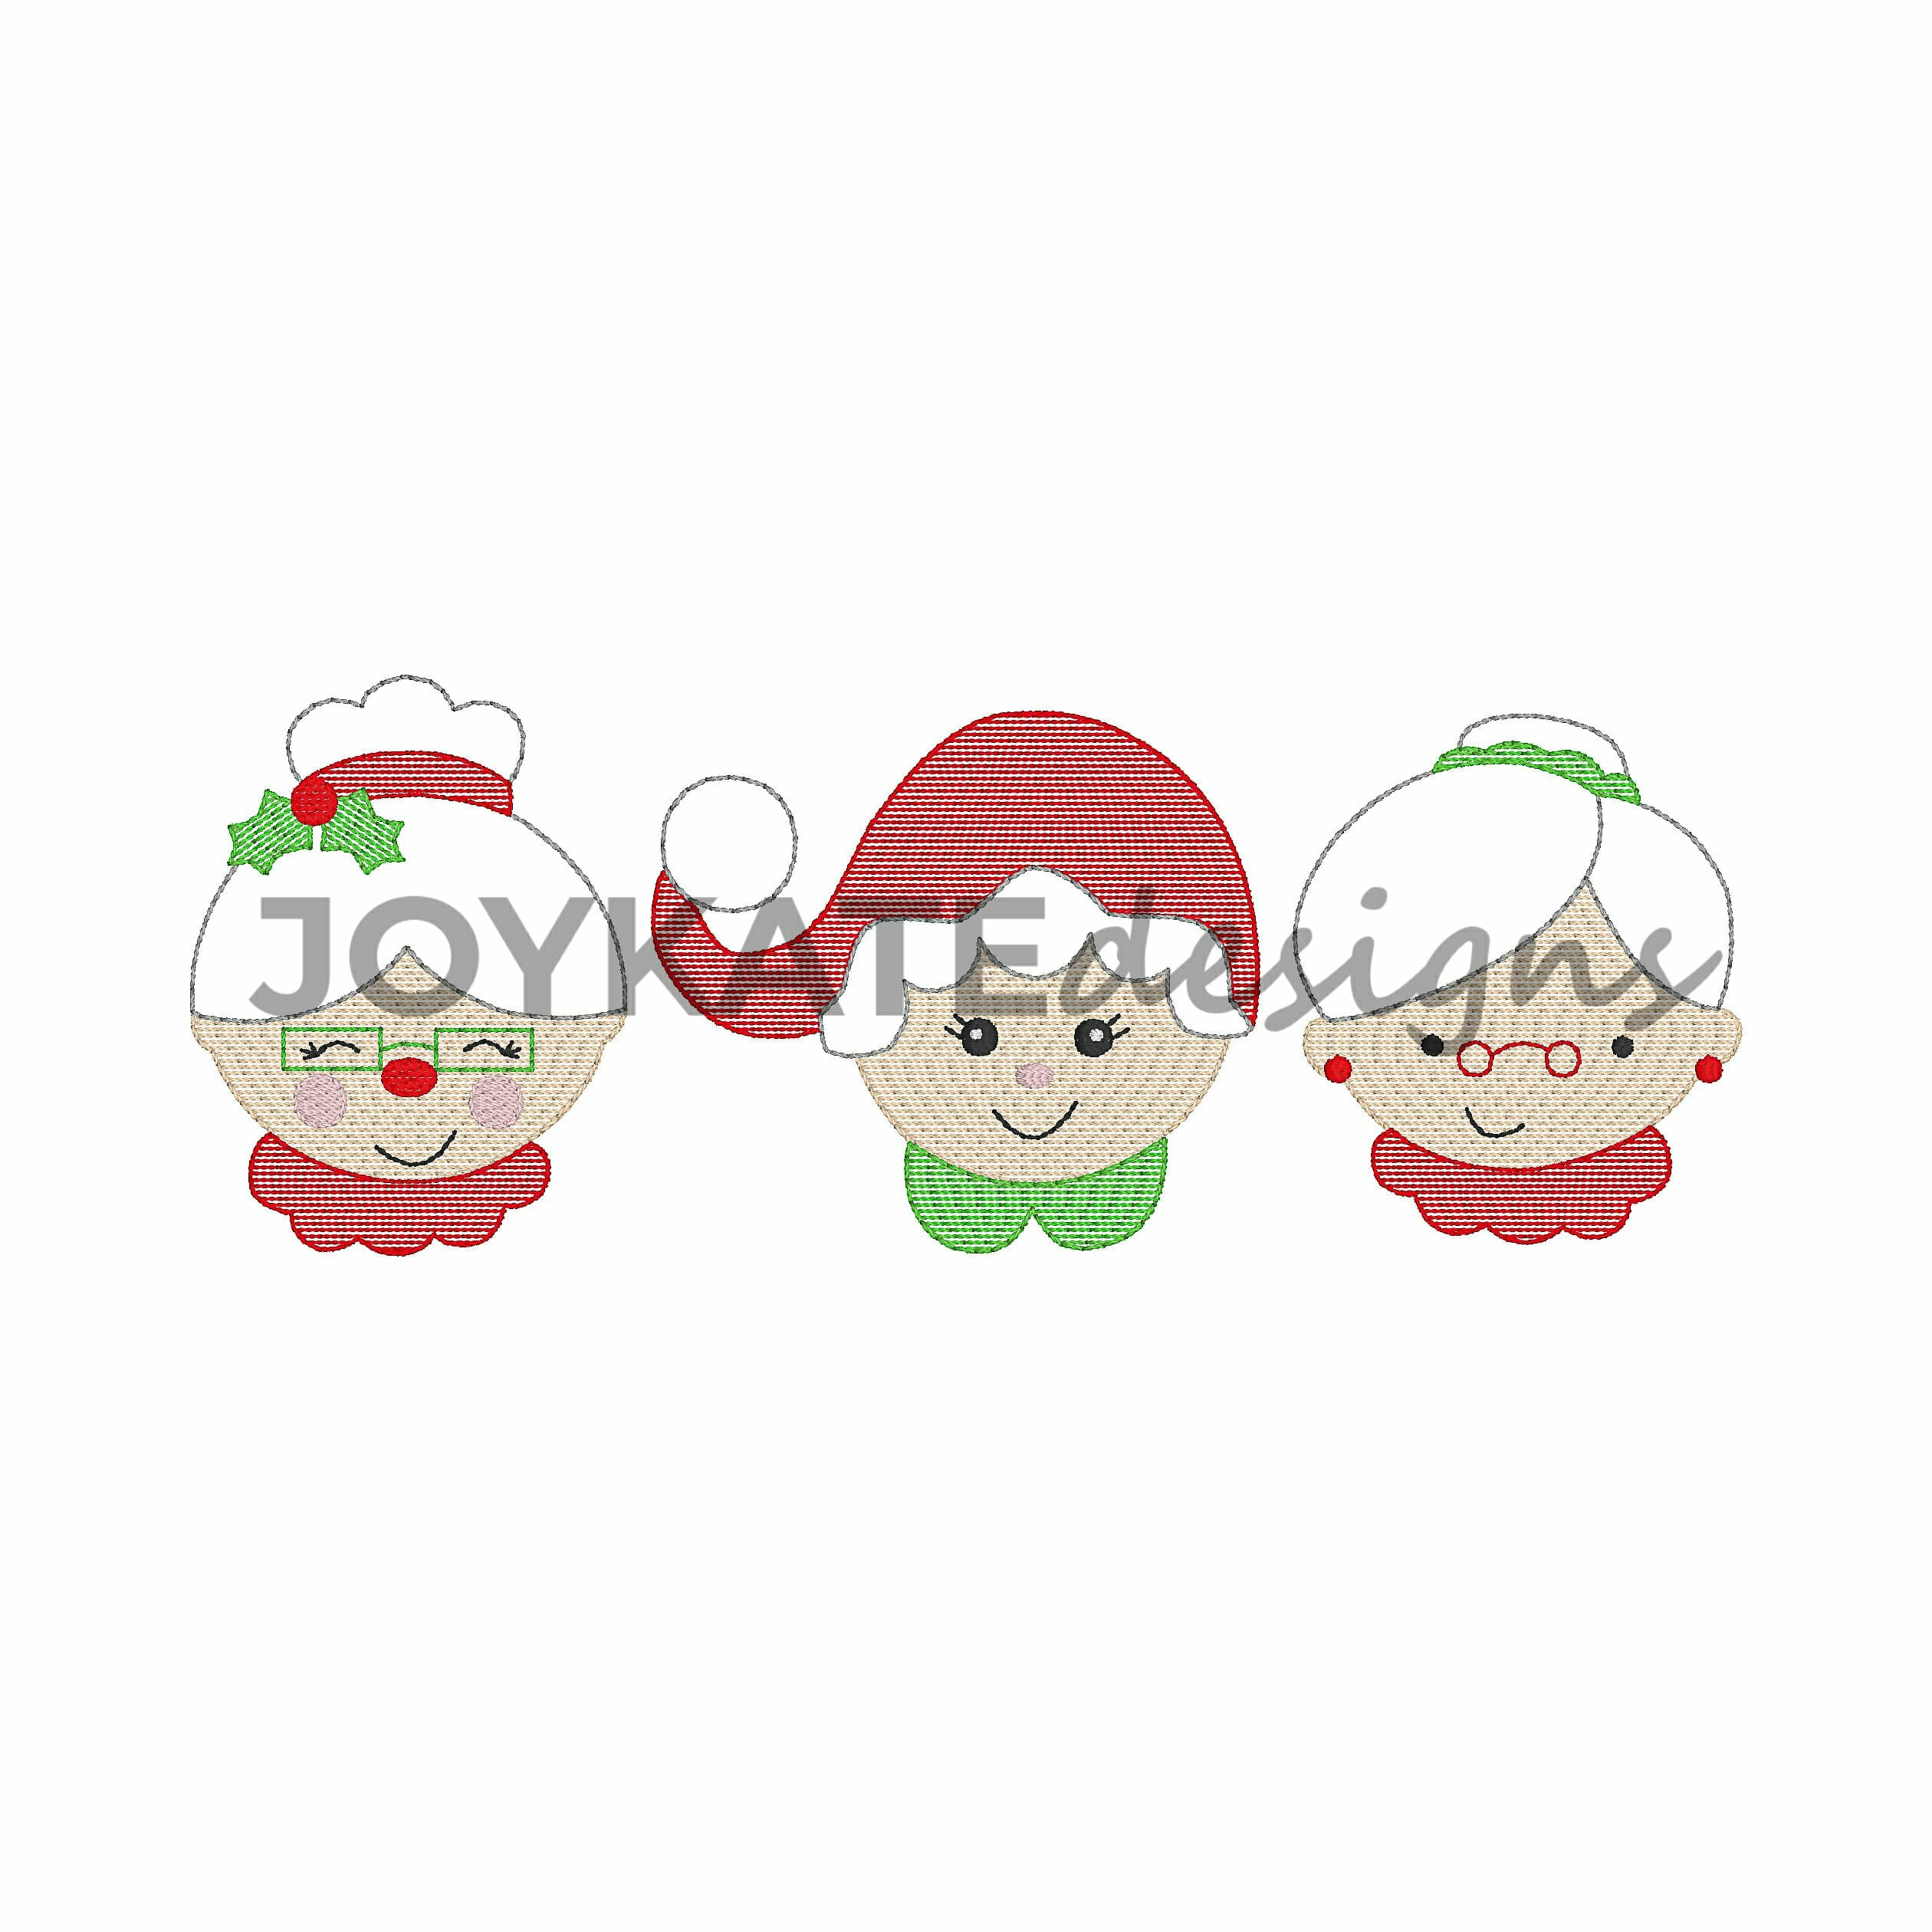 Applique Mrs Claus Embroidery Design